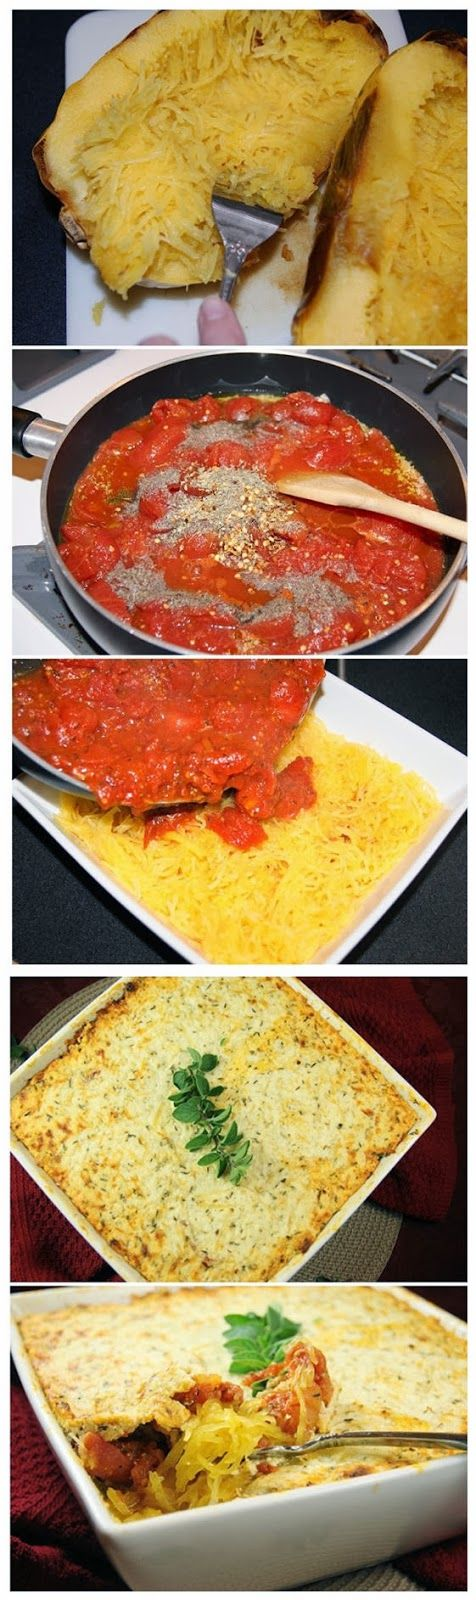 Baked Spaghetti Squash With Beef And Veggies Recipe — Dishmaps